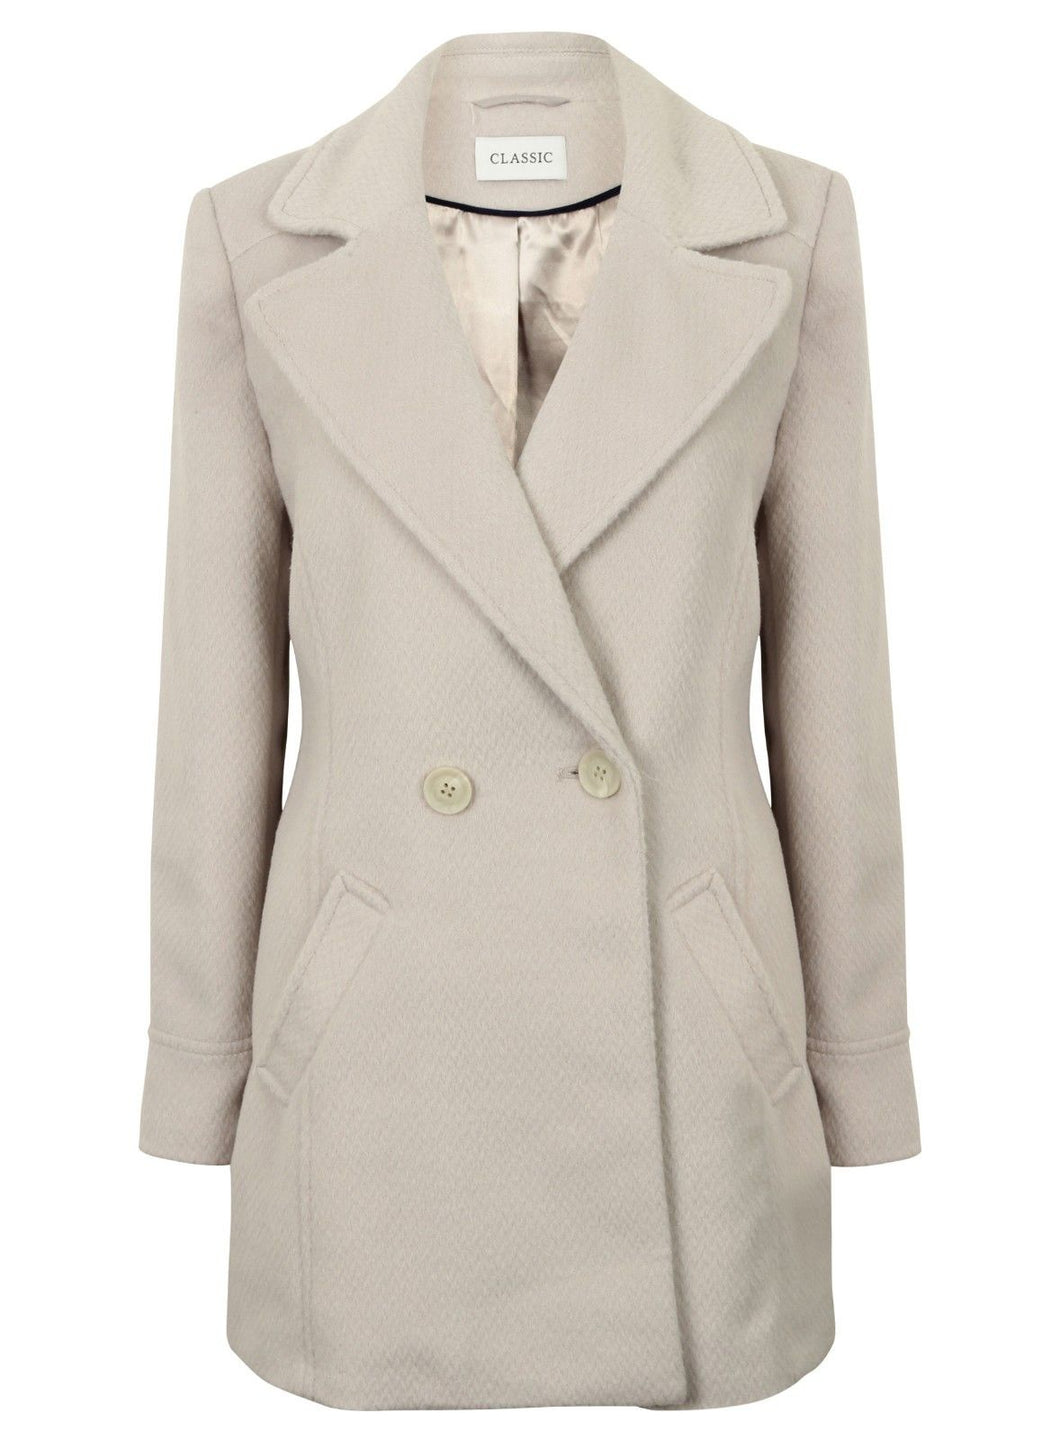 Ex Marks And Spencer Collection Cream Jacket Coat